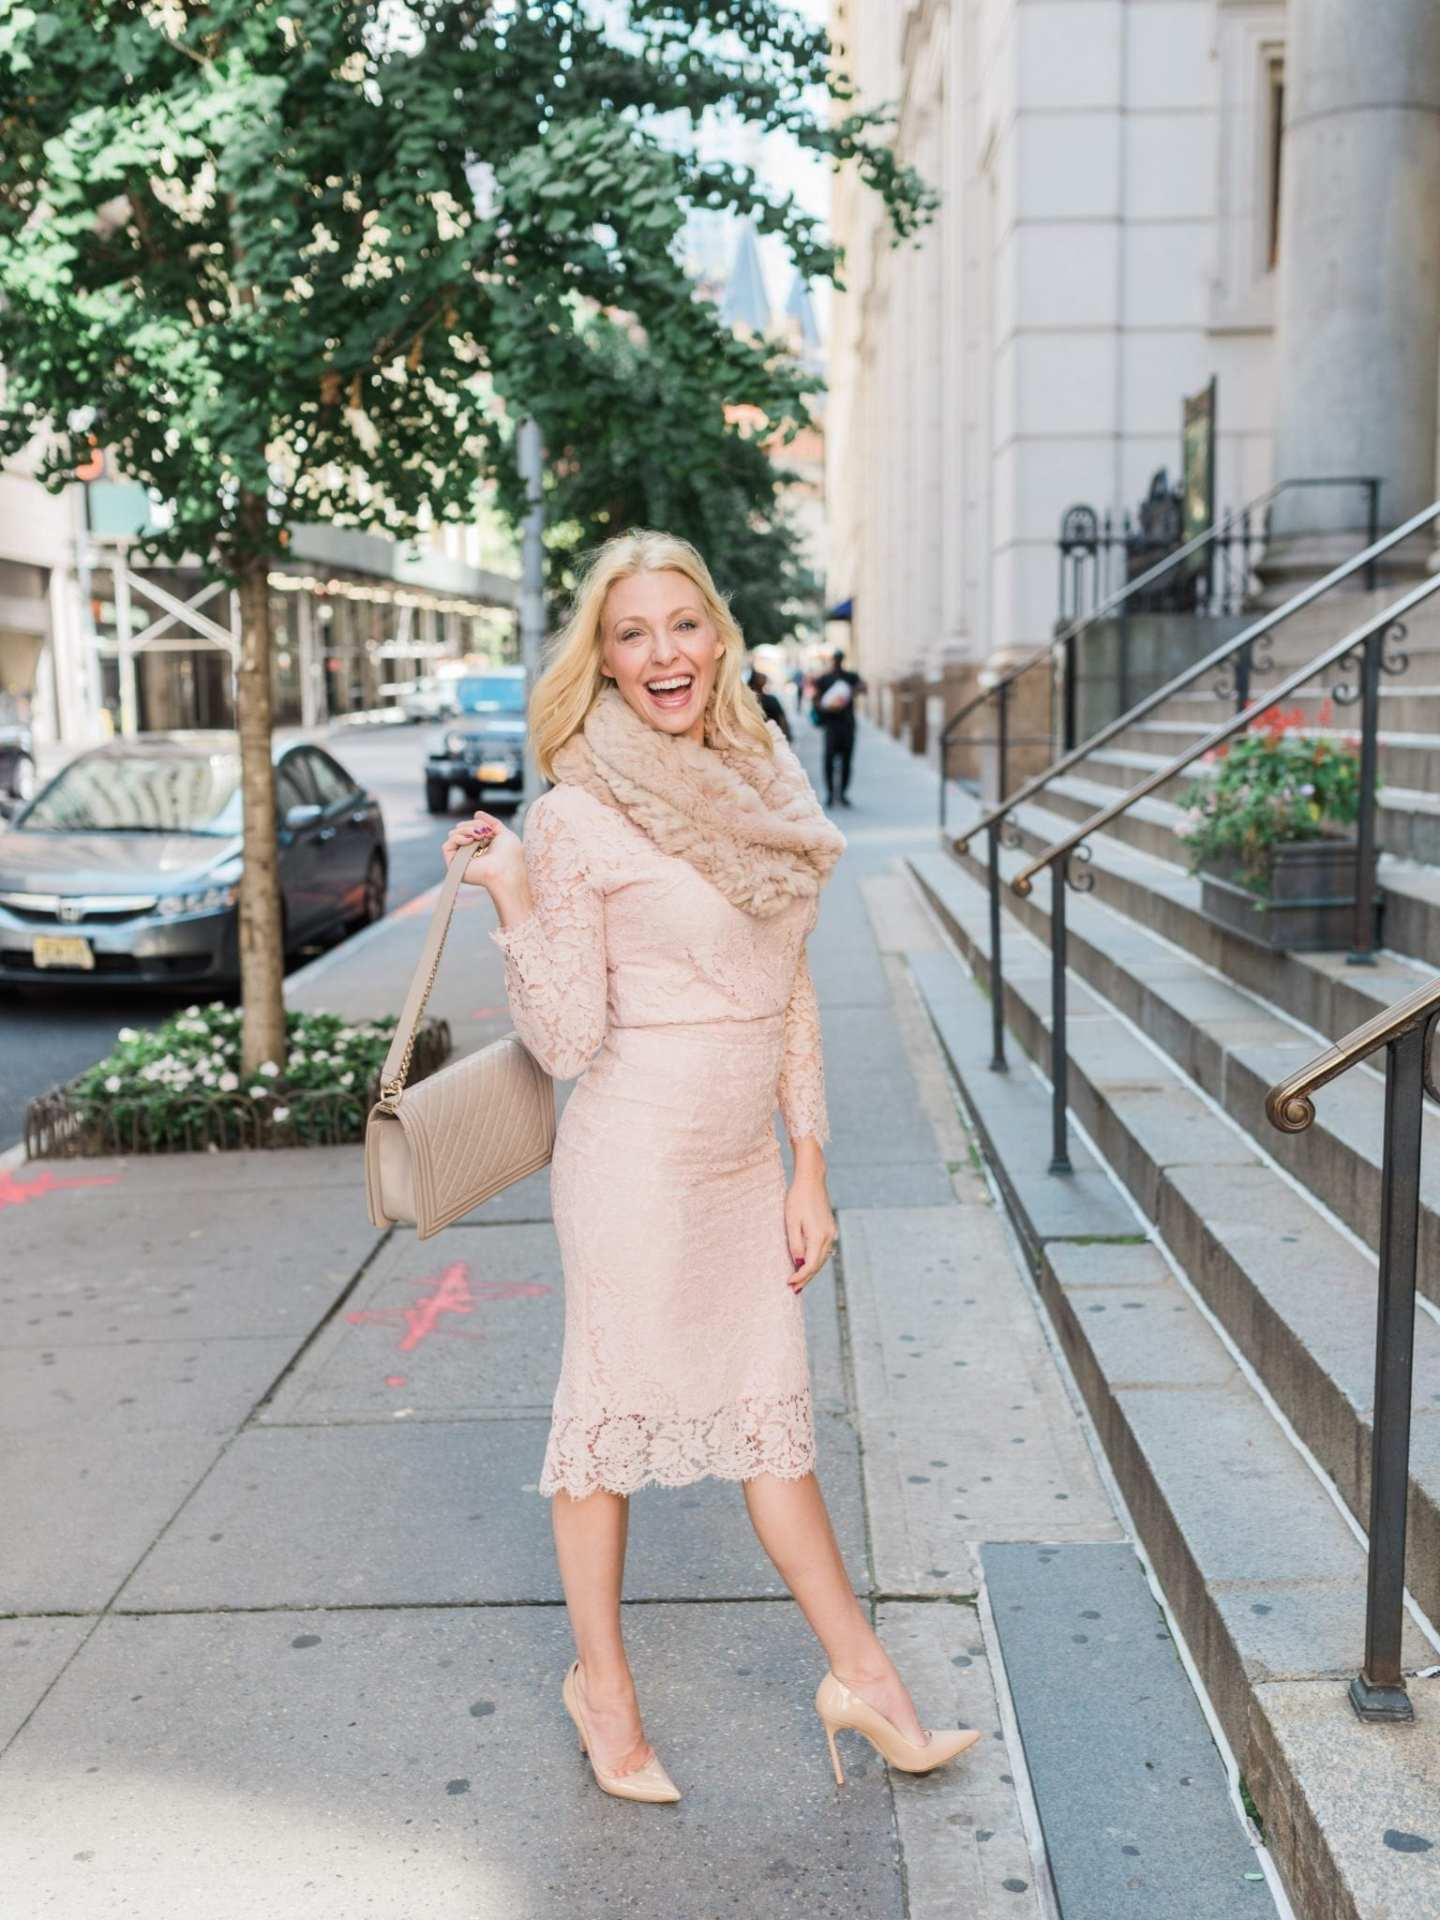 Kelly Page is an Atlanta blogger for bluegraygal brand. This is a review of a classic ladylike outfit in pink lace designed by Rachel Parcell.